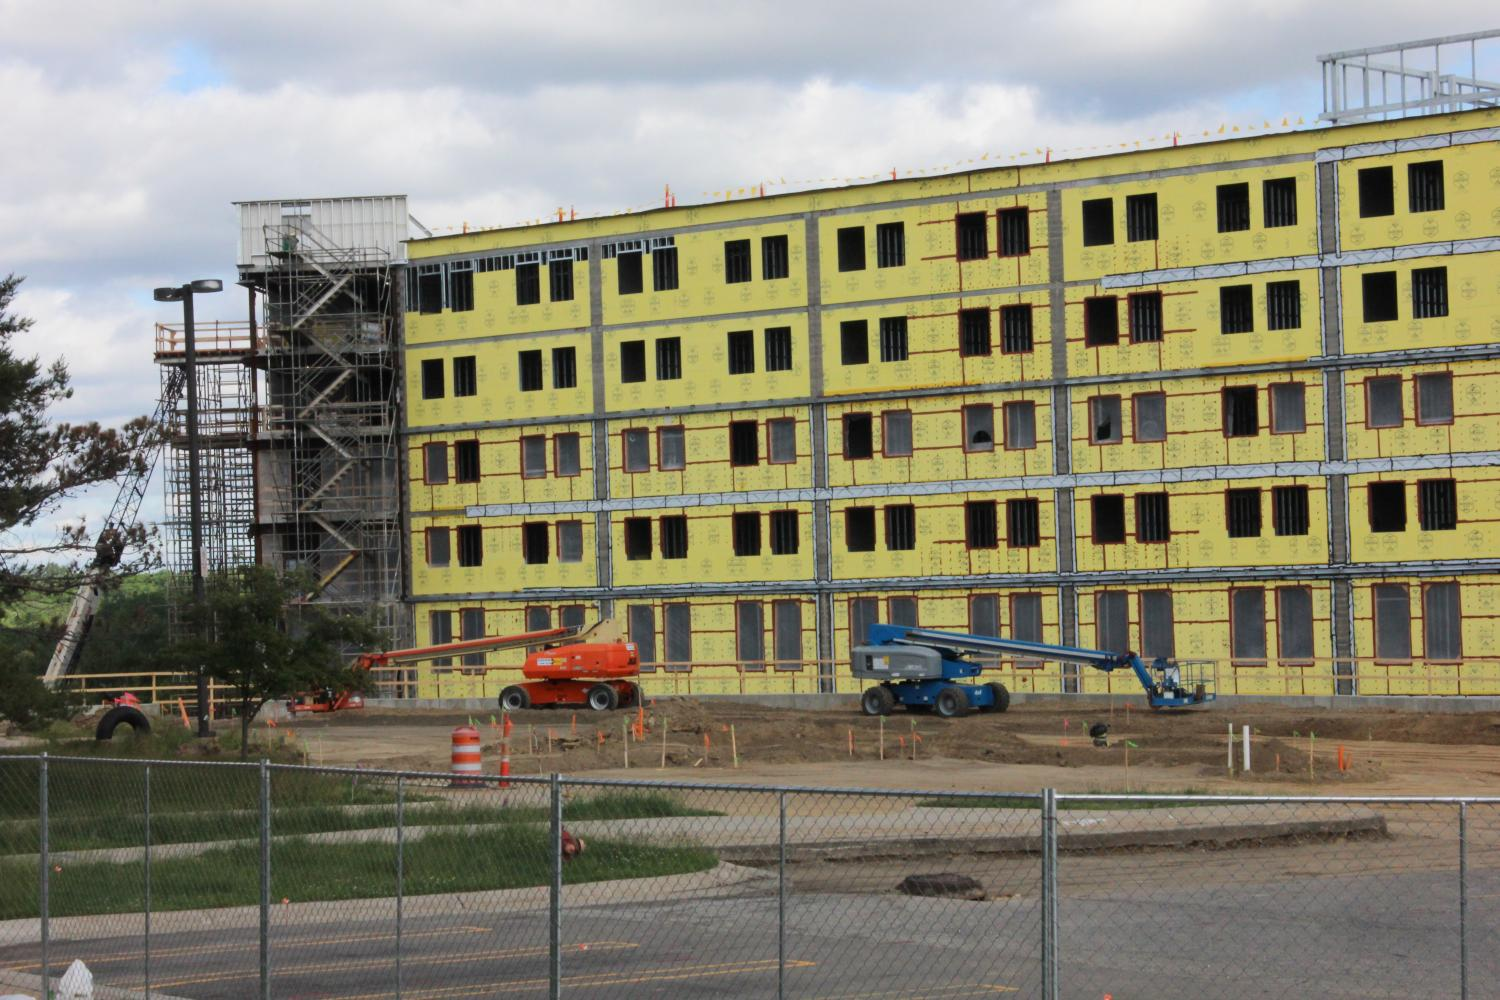 The new Southern Housing Complex will bring many new changes to residential life on campus